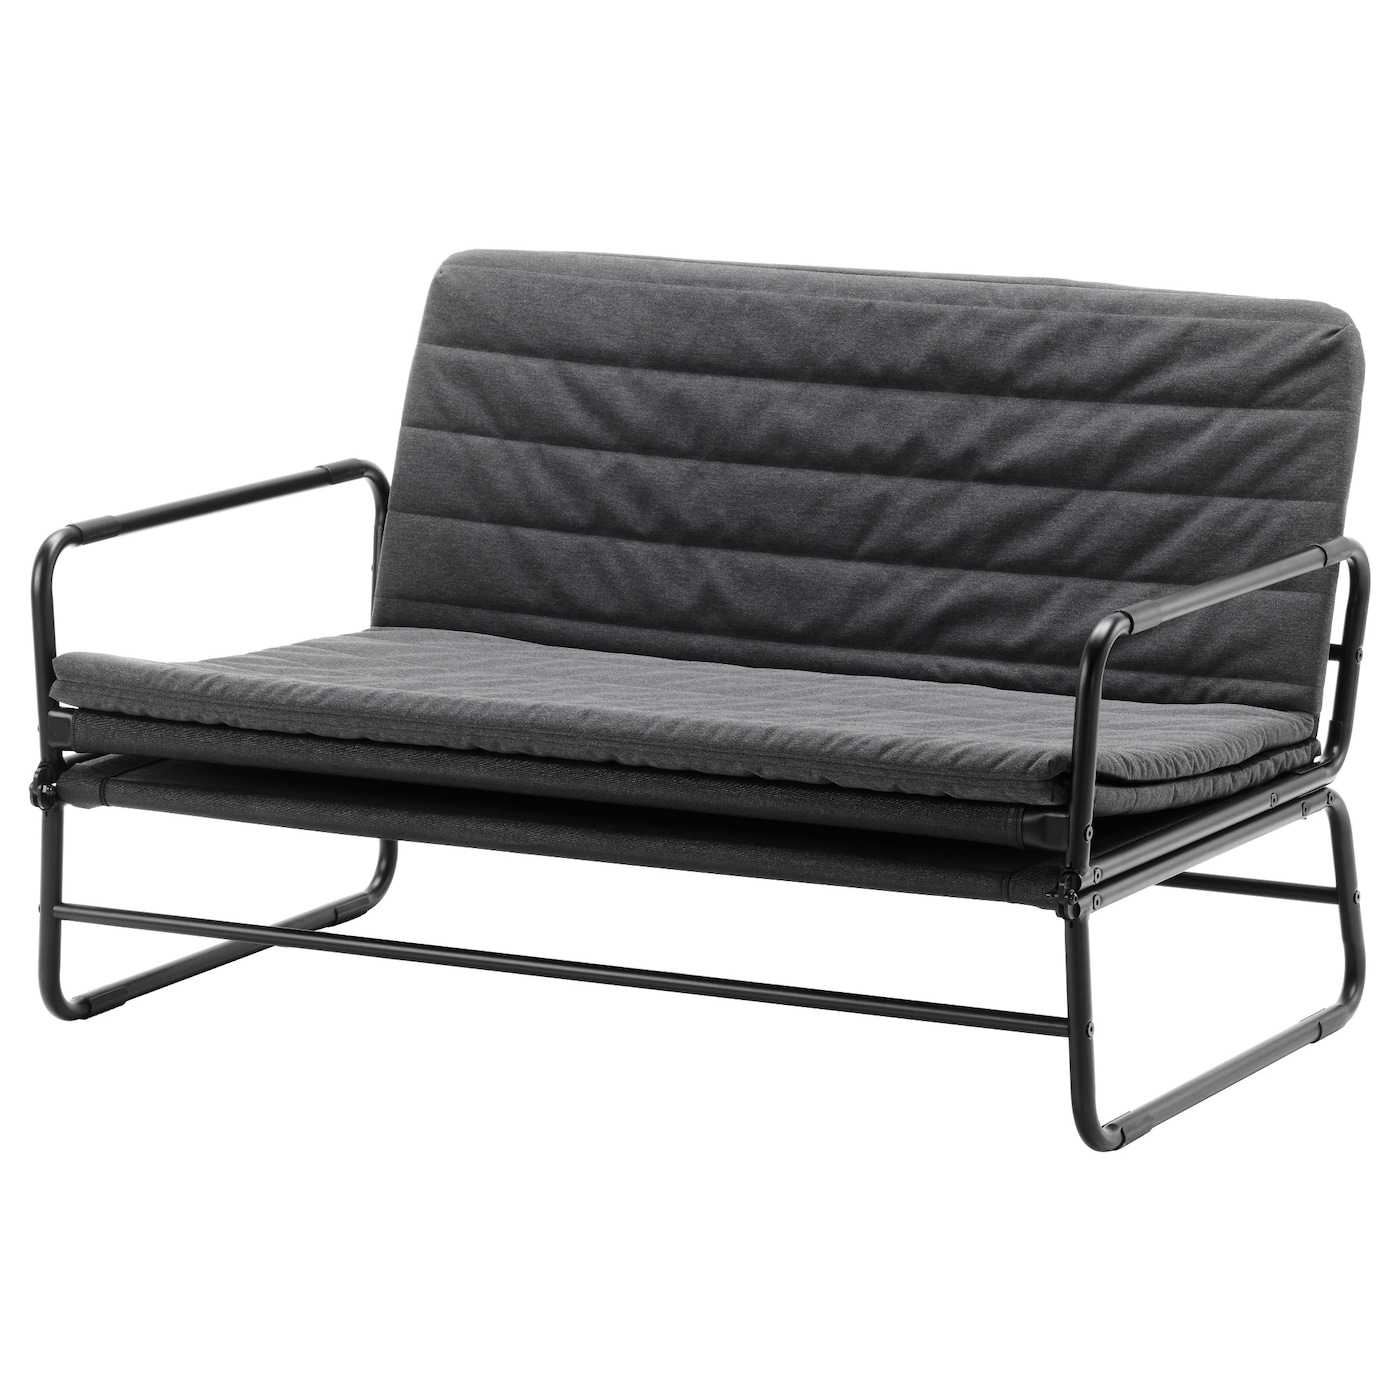 Hammarn sofa bed knisa dark grey black 120 cm ikea Ikea divan beds